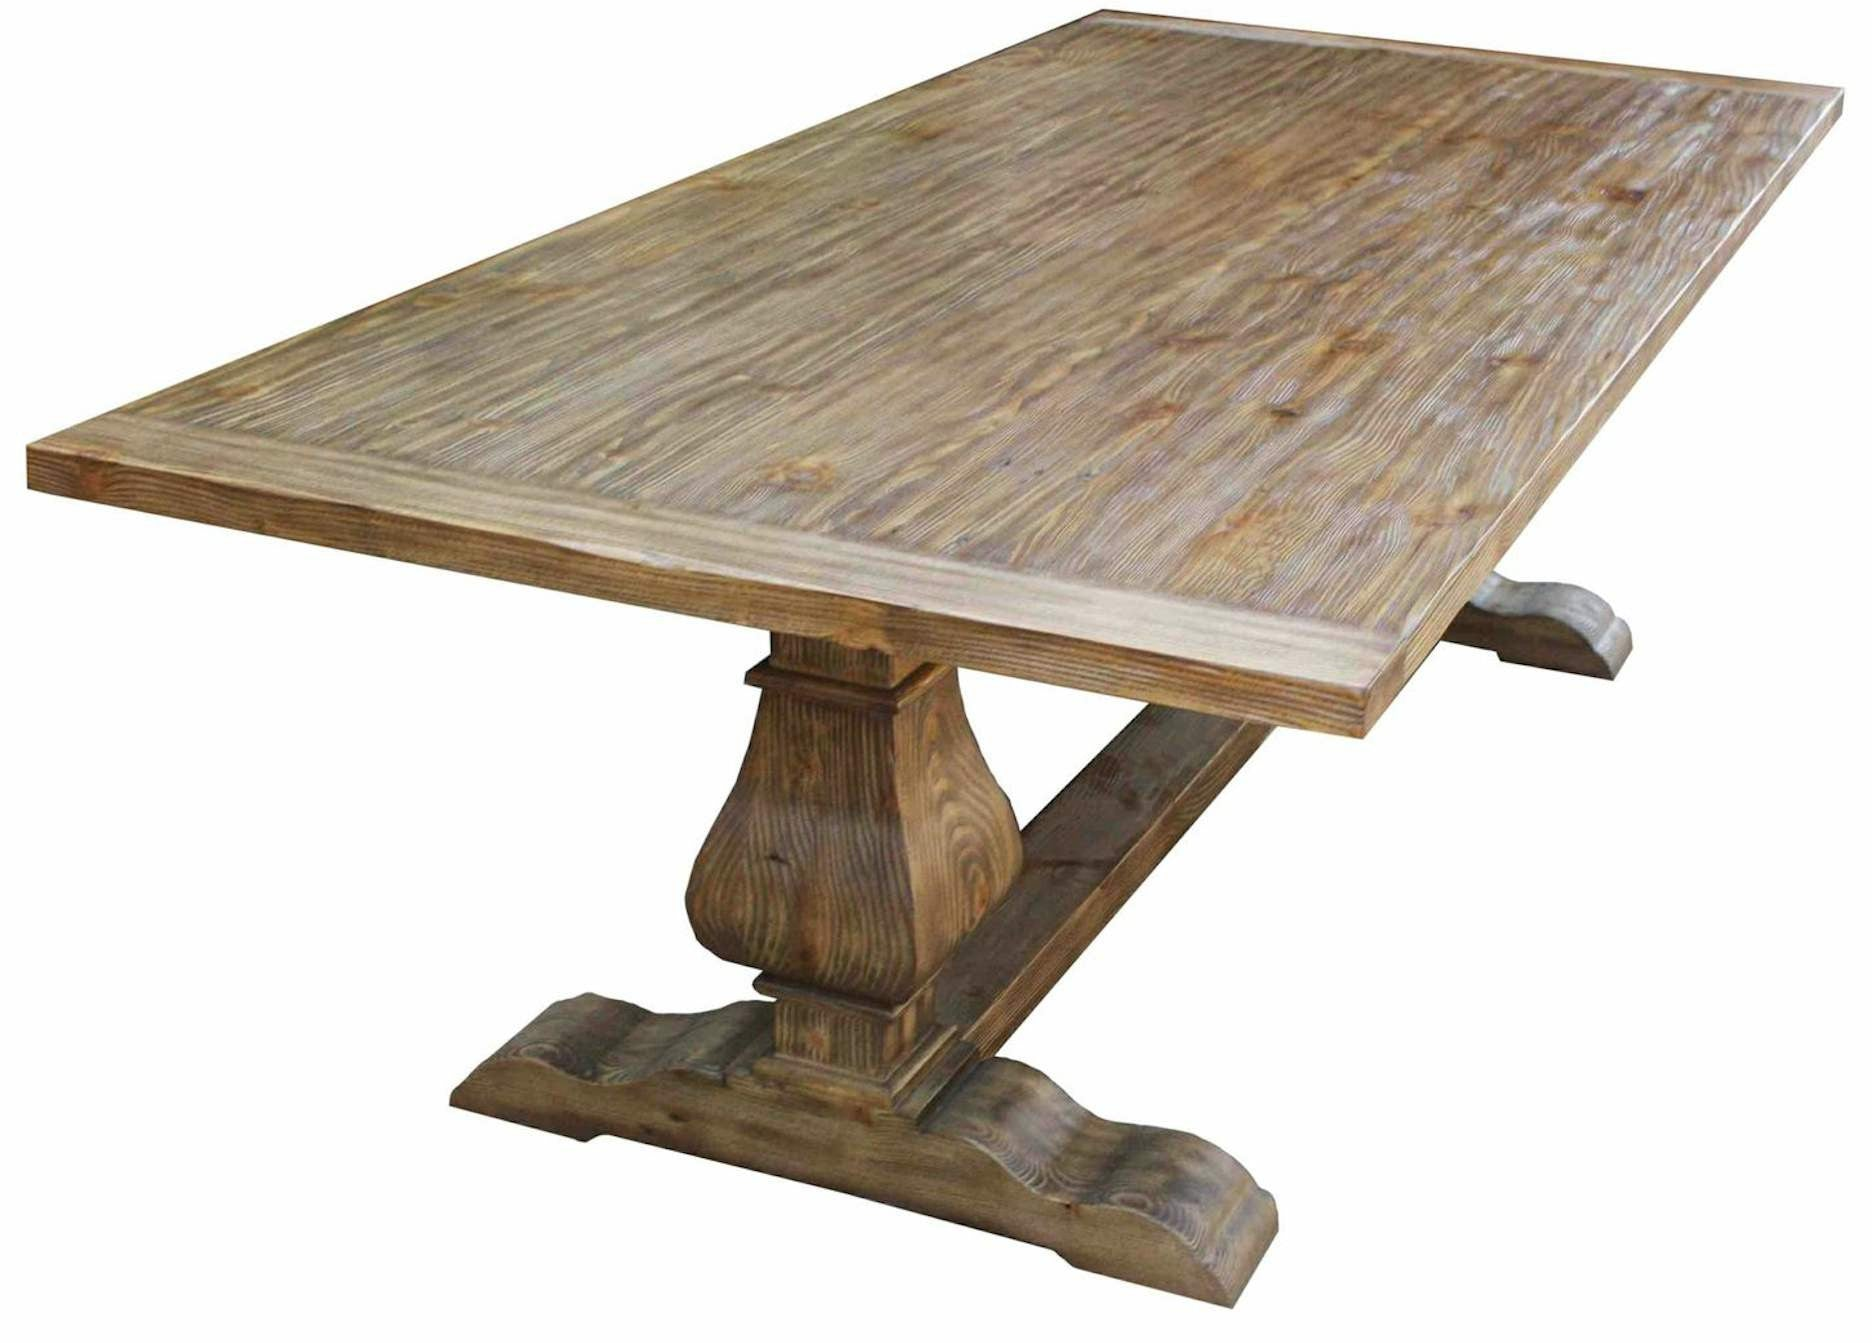 Modern Reclaimed Wood Dining Table Reclaimed Wood Furniture Modern Industrial Modern Metal And